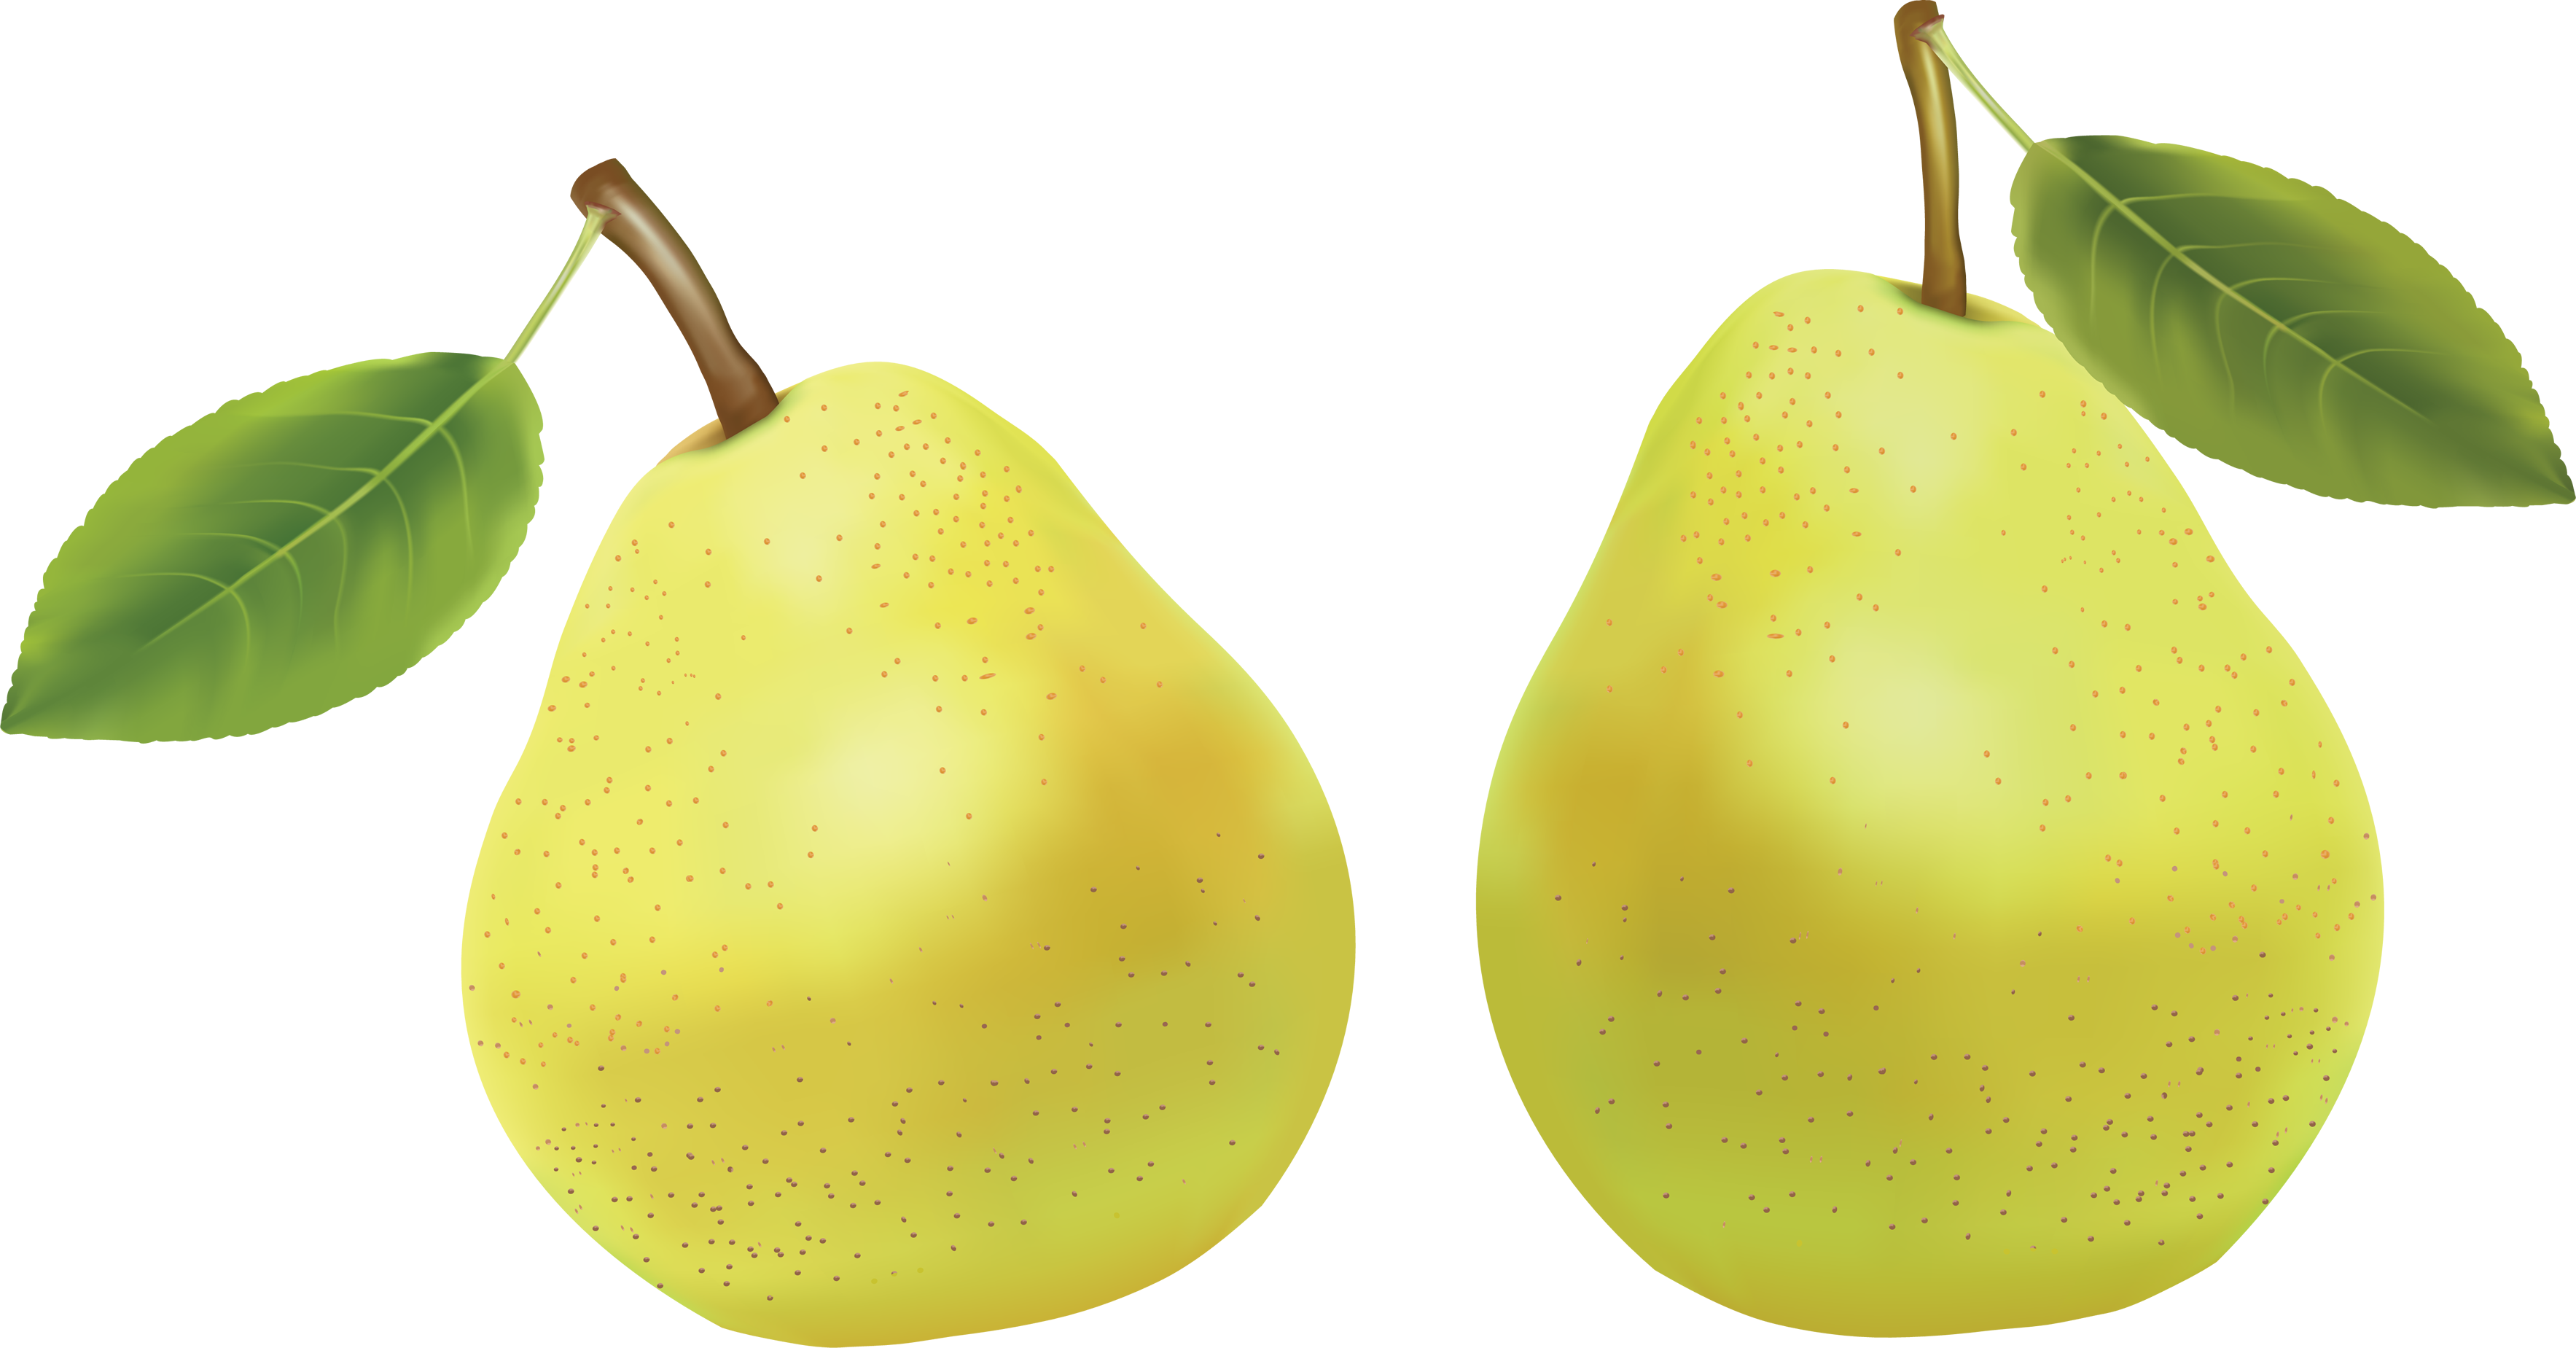 Pear clipart two. Png images free download